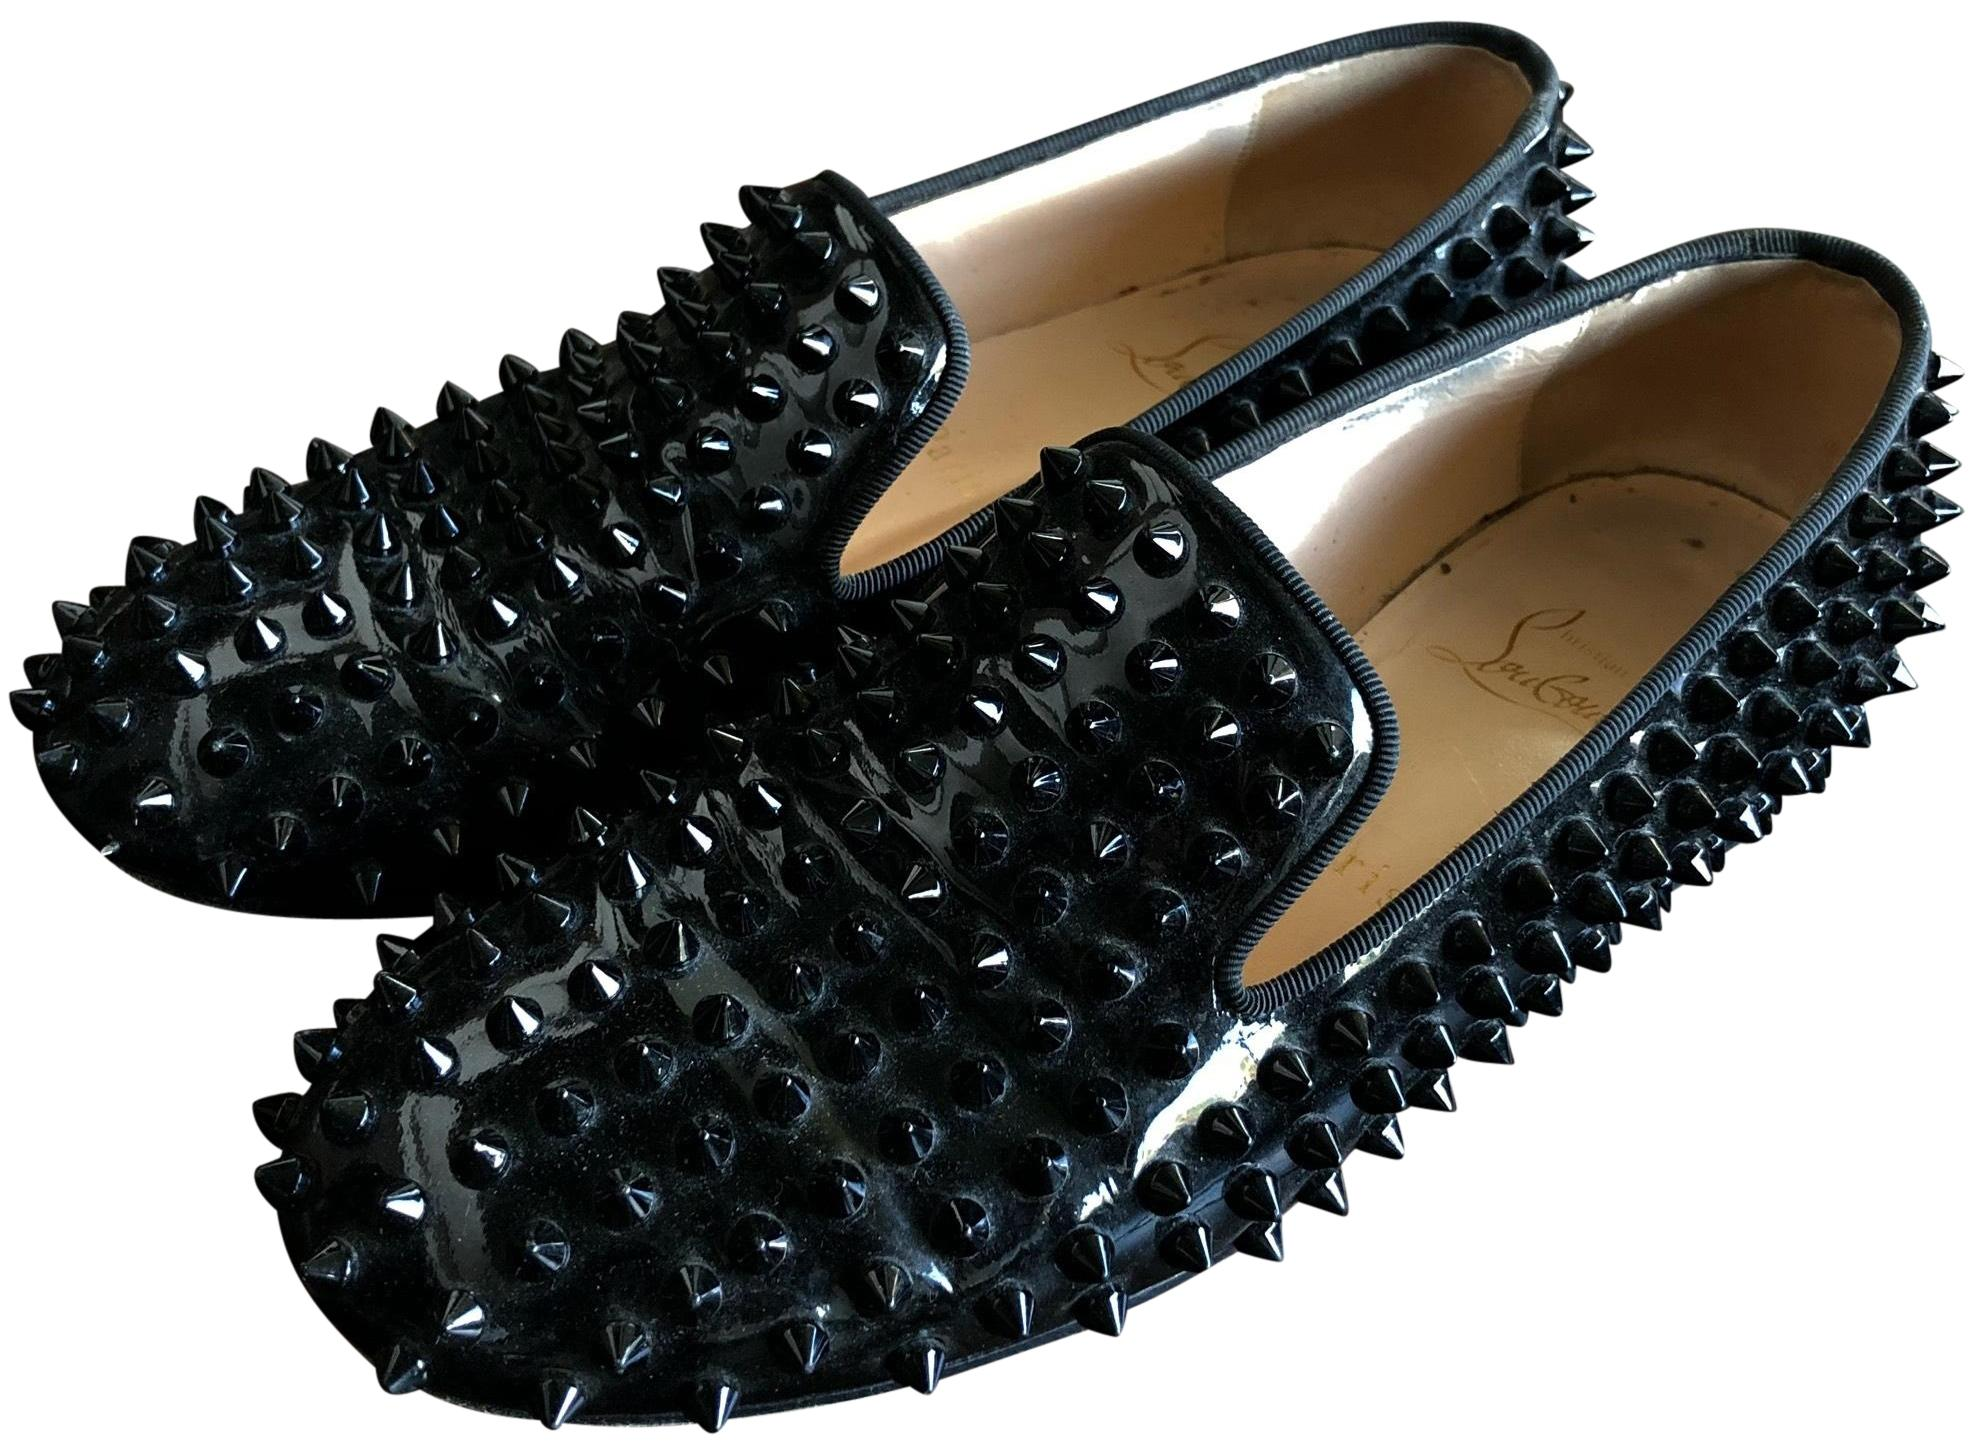 09092c086 Christian Louboutin Black Spiked Flats Size US 7 Regular (M